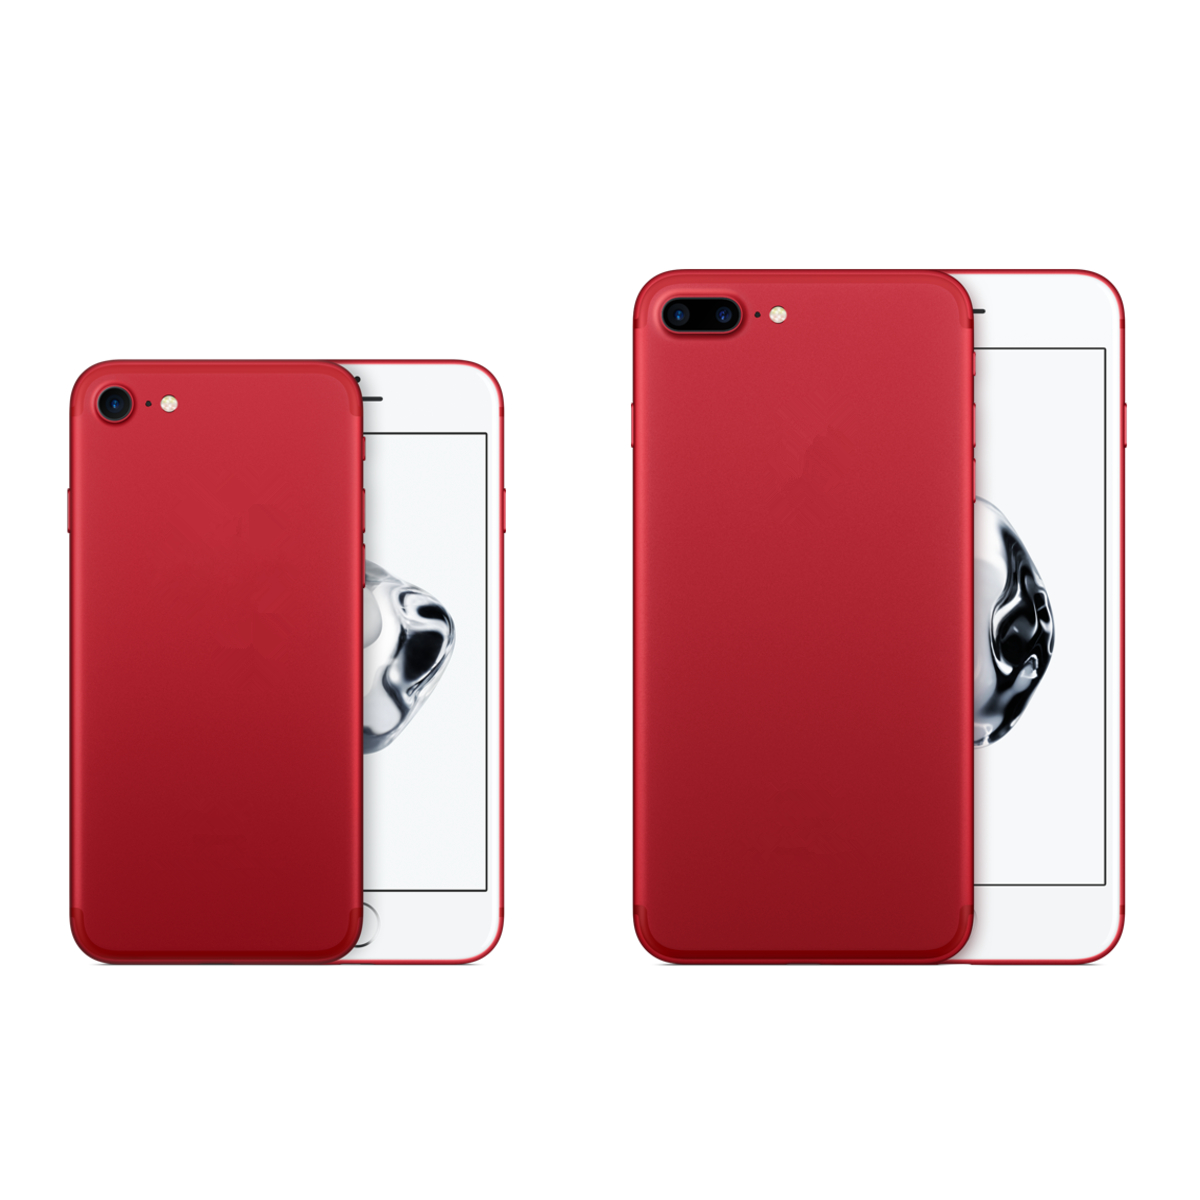 Product Red PC Shockproof Dropproof Back Case For iPhone 7/7 Plus & 8/8 Plus